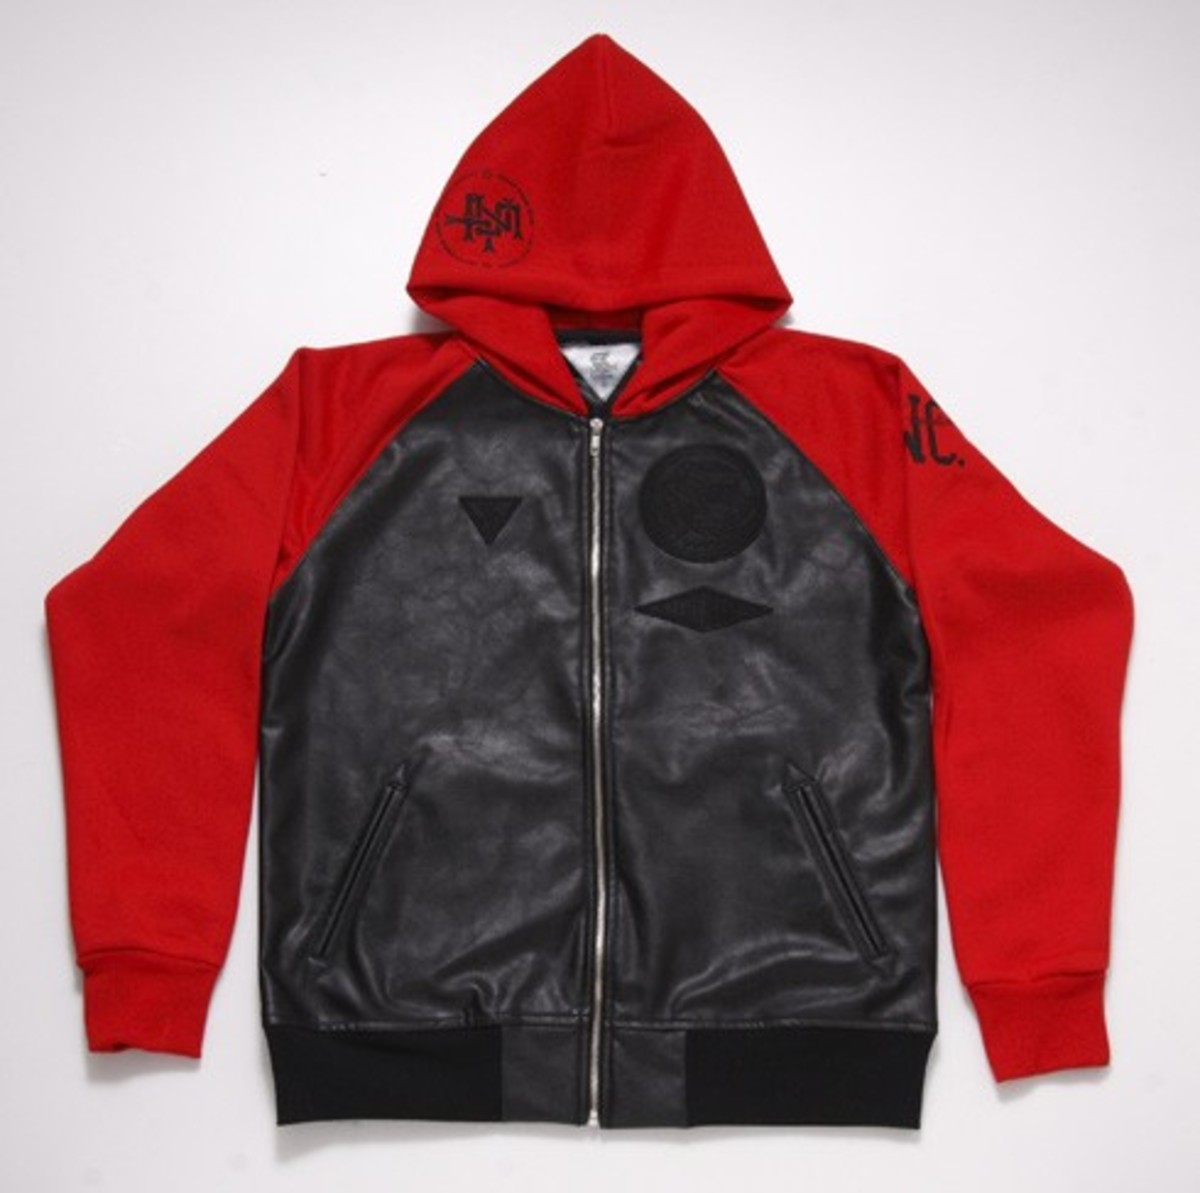 freshness-leather-zip-up-hoodie-red.jpg